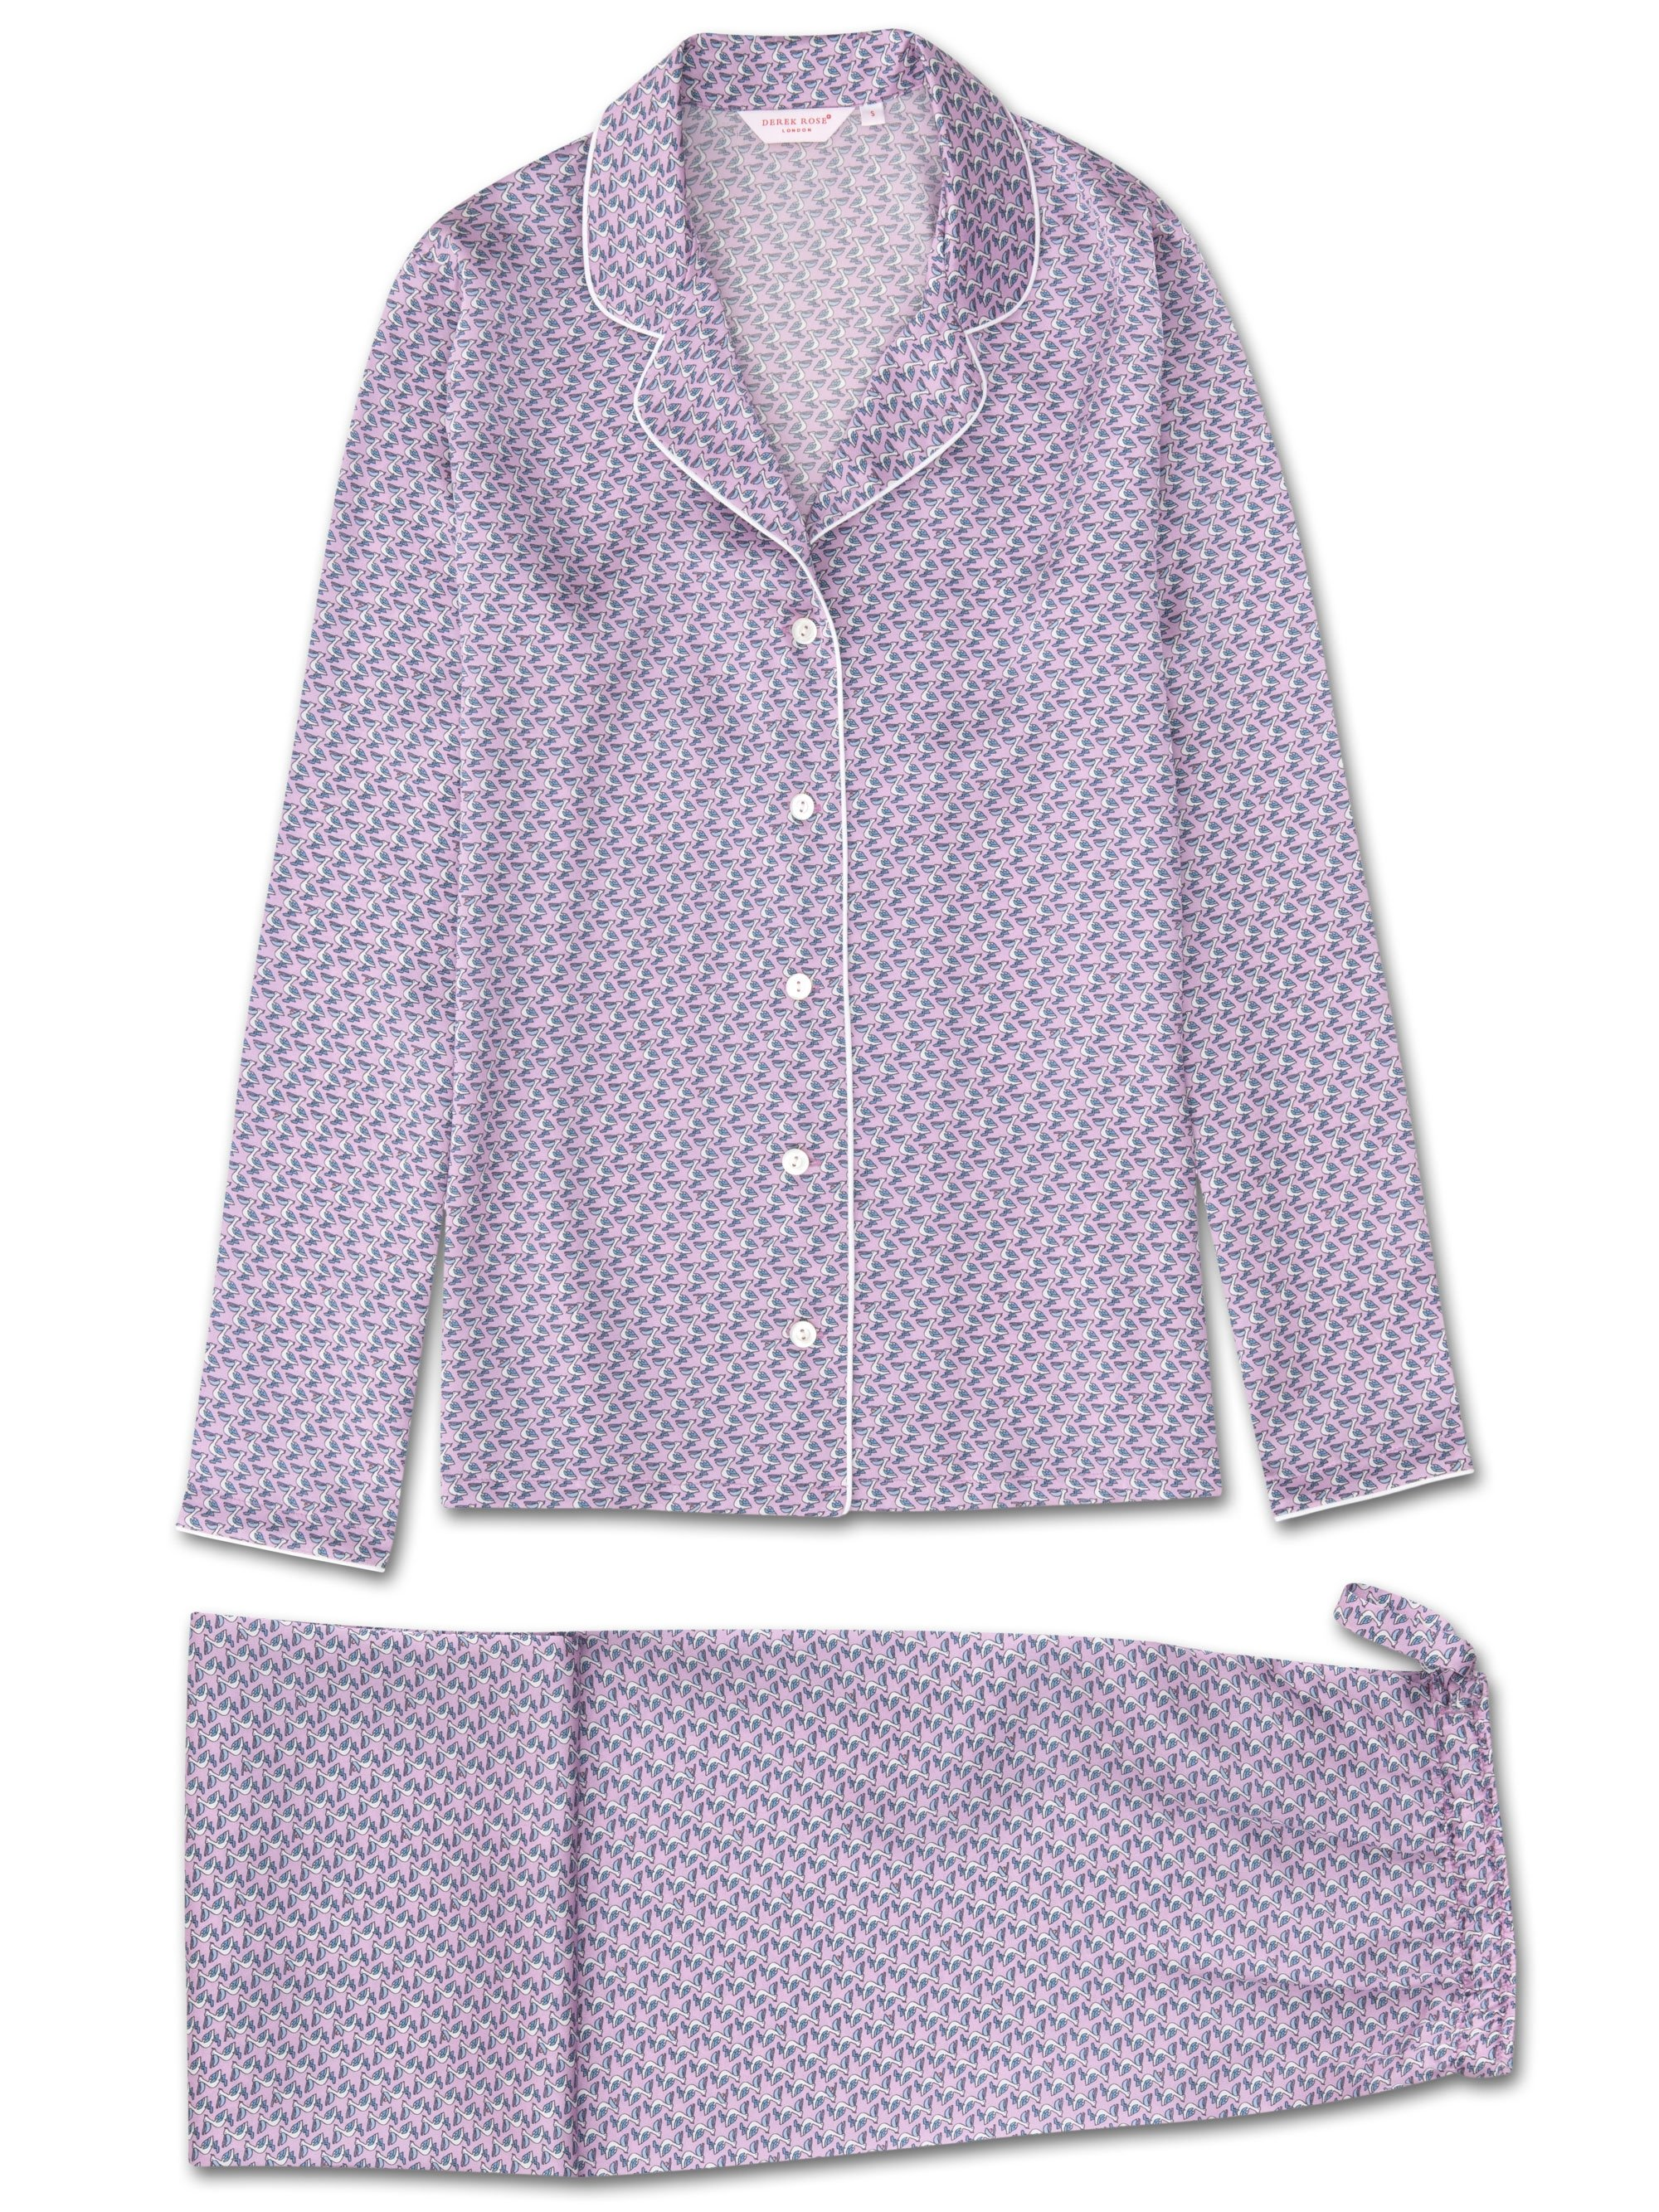 Women's Pyjamas Brindisi 32 Pure Silk Satin Lilac